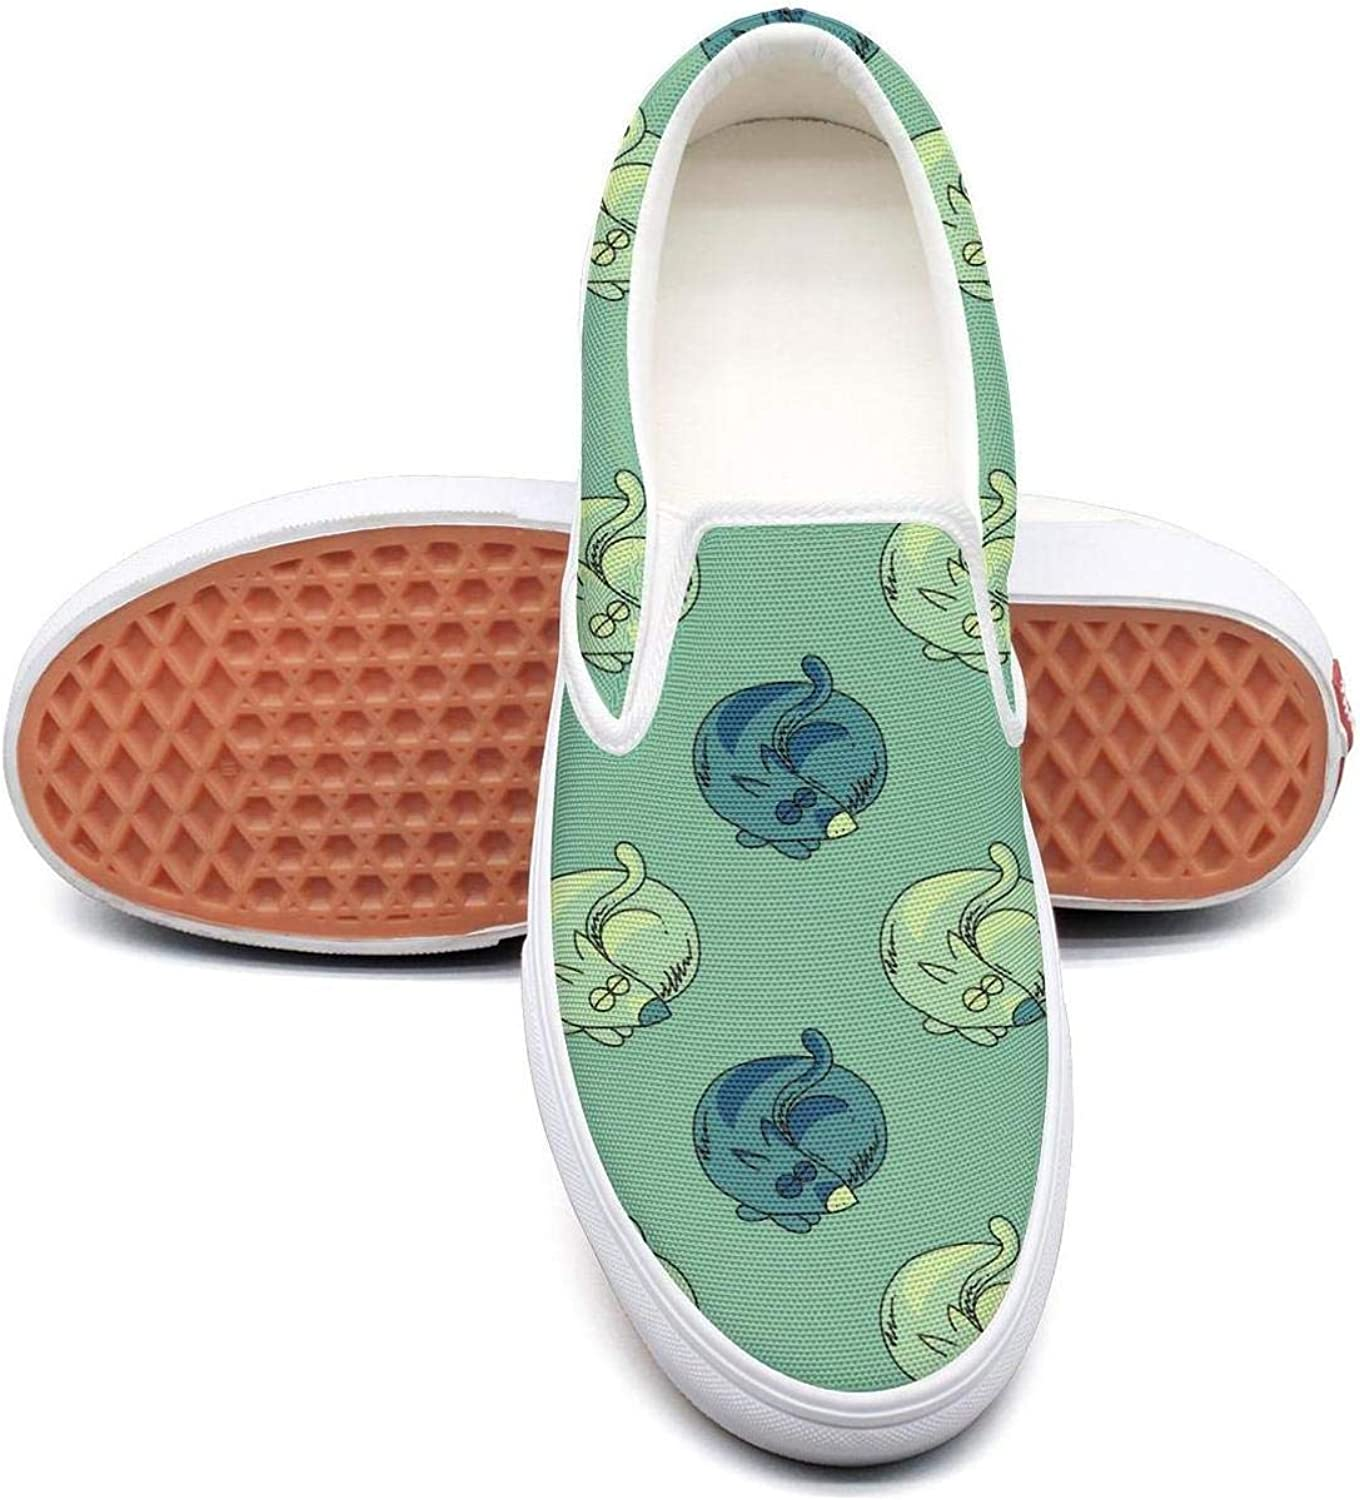 Sleeping Dog in Green Womens Latest Slip on Low Top Canvas Sneakers